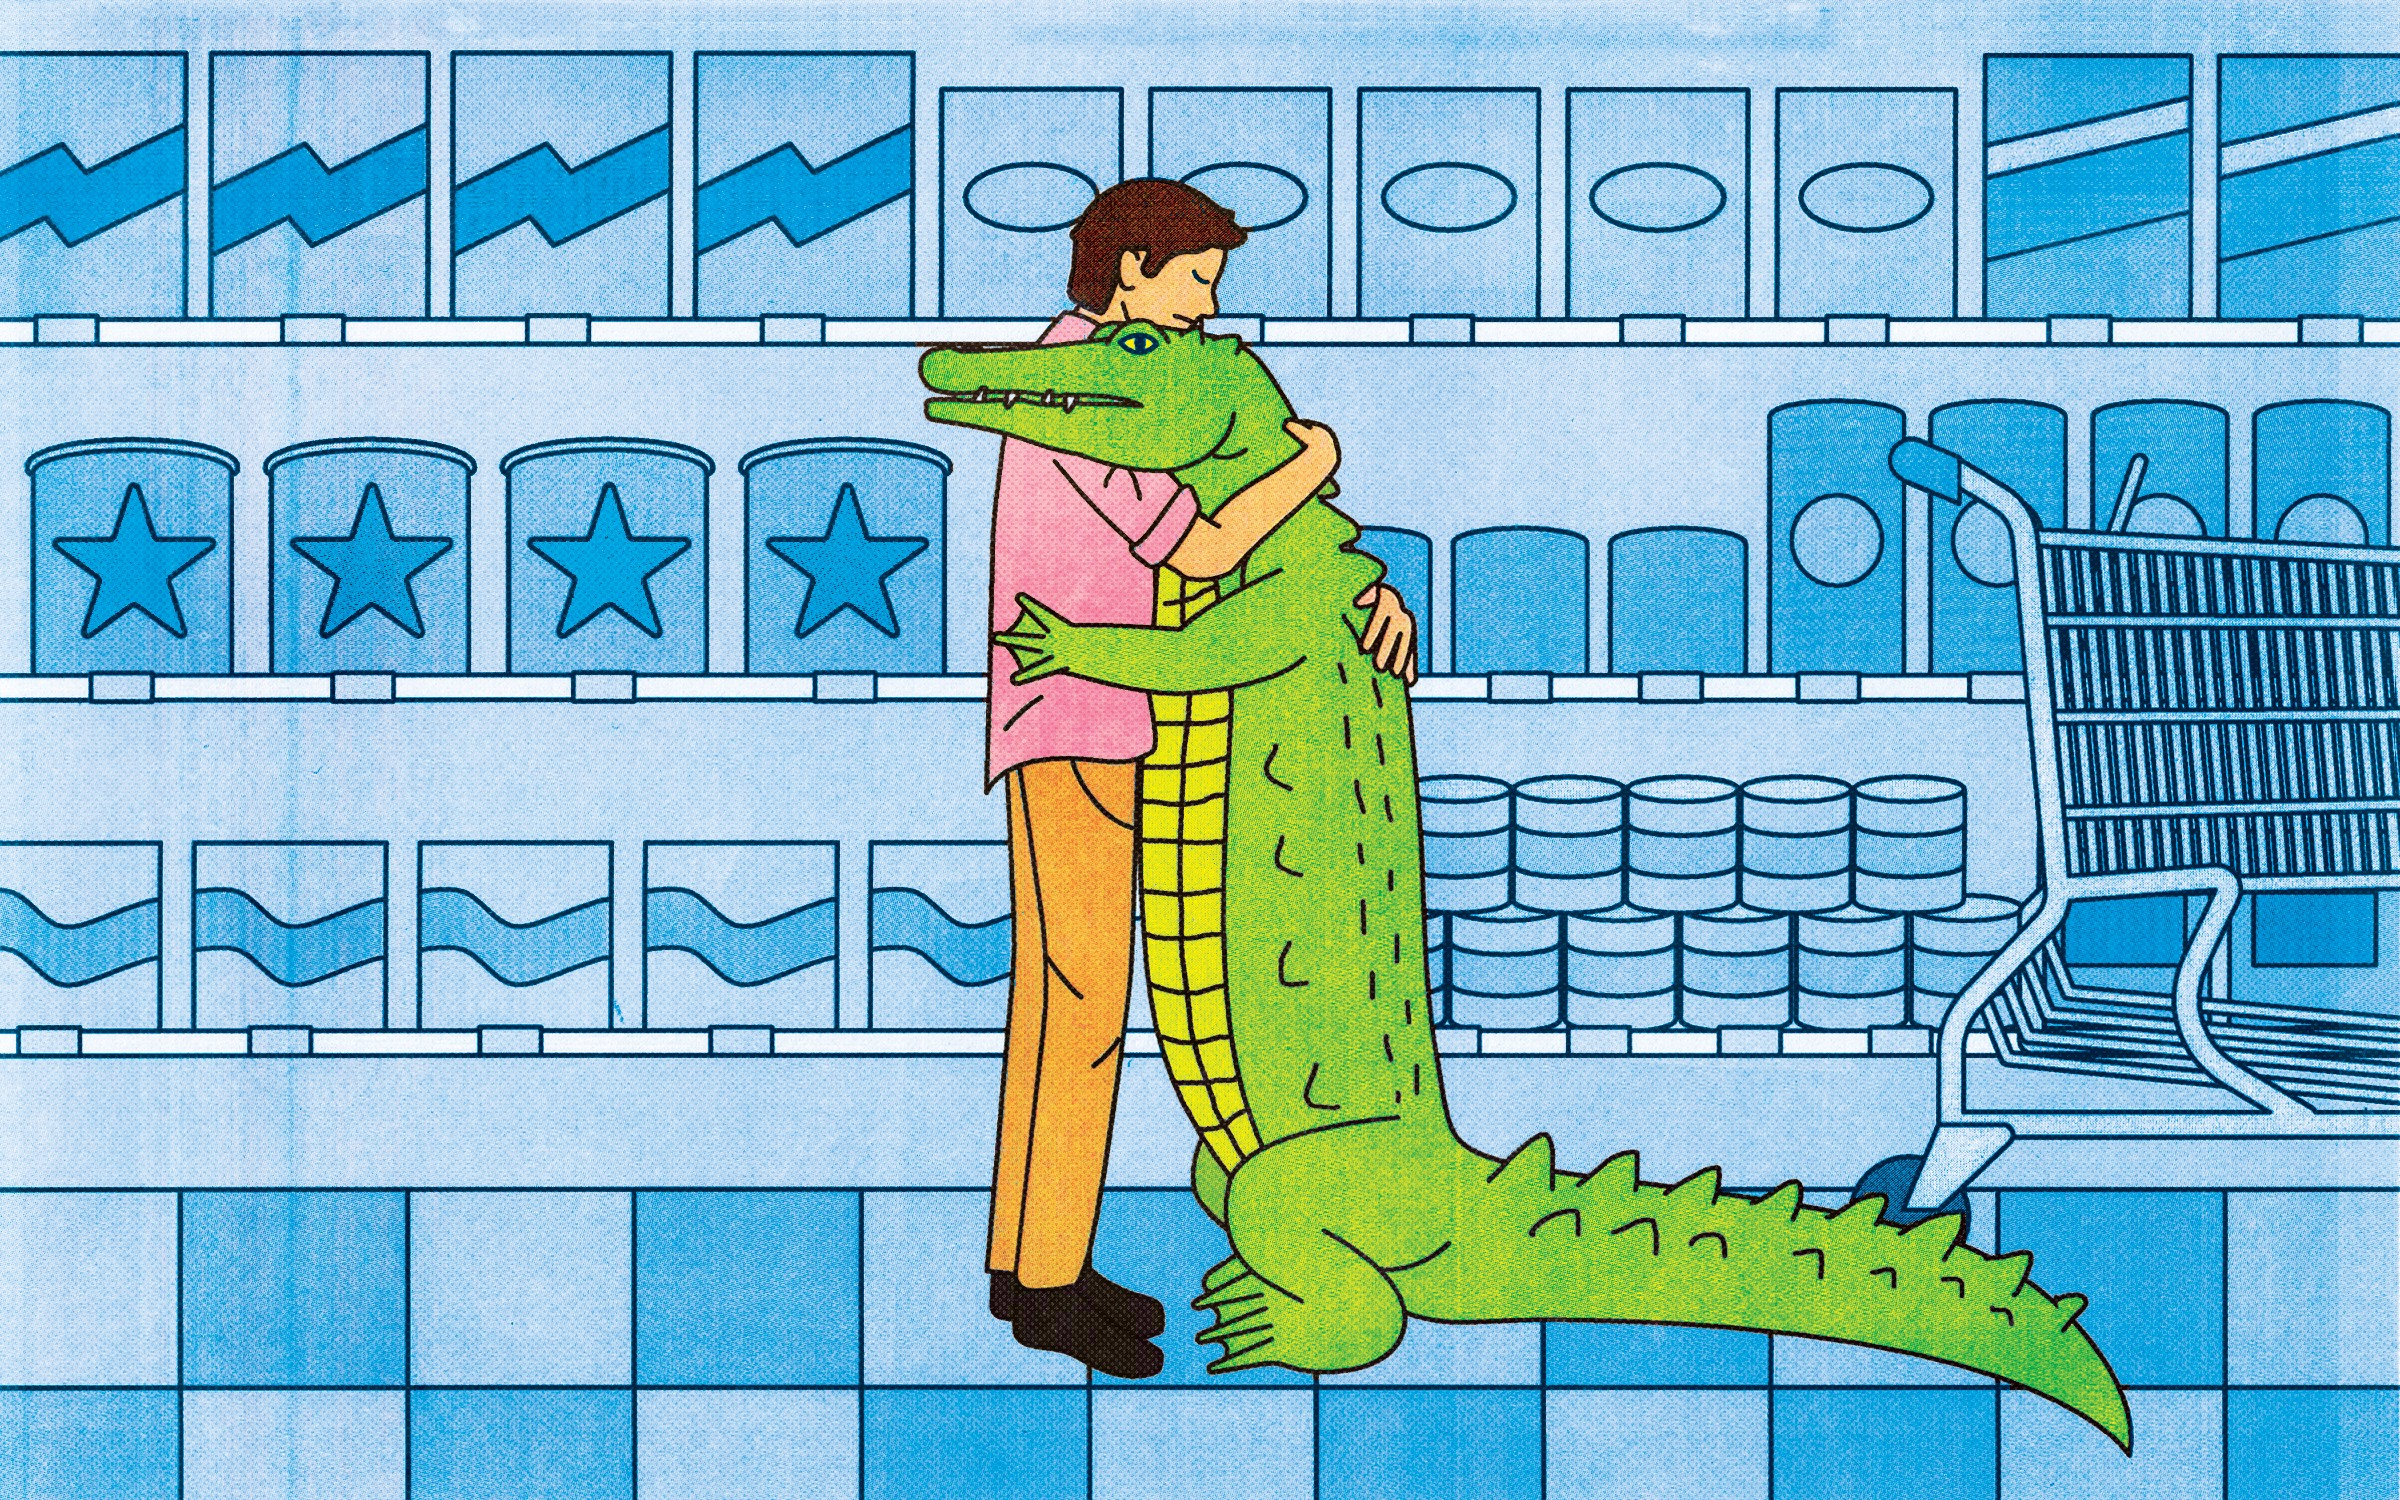 An illustration of a man hugging an alligator in a supermarket aisle.